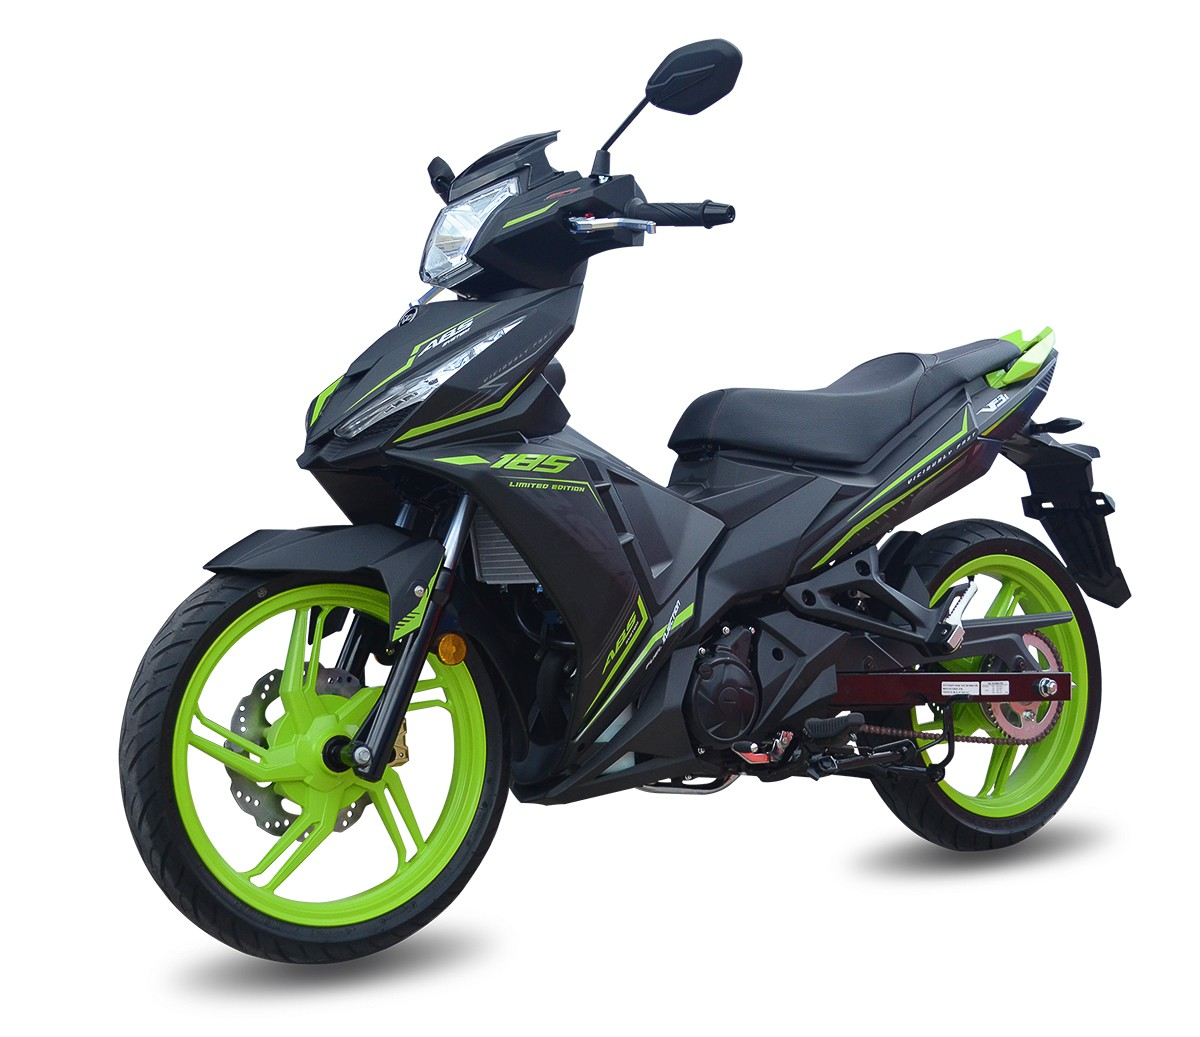 2020 sym vf3i limited edition le launch price malaysia 185cc super moped 2